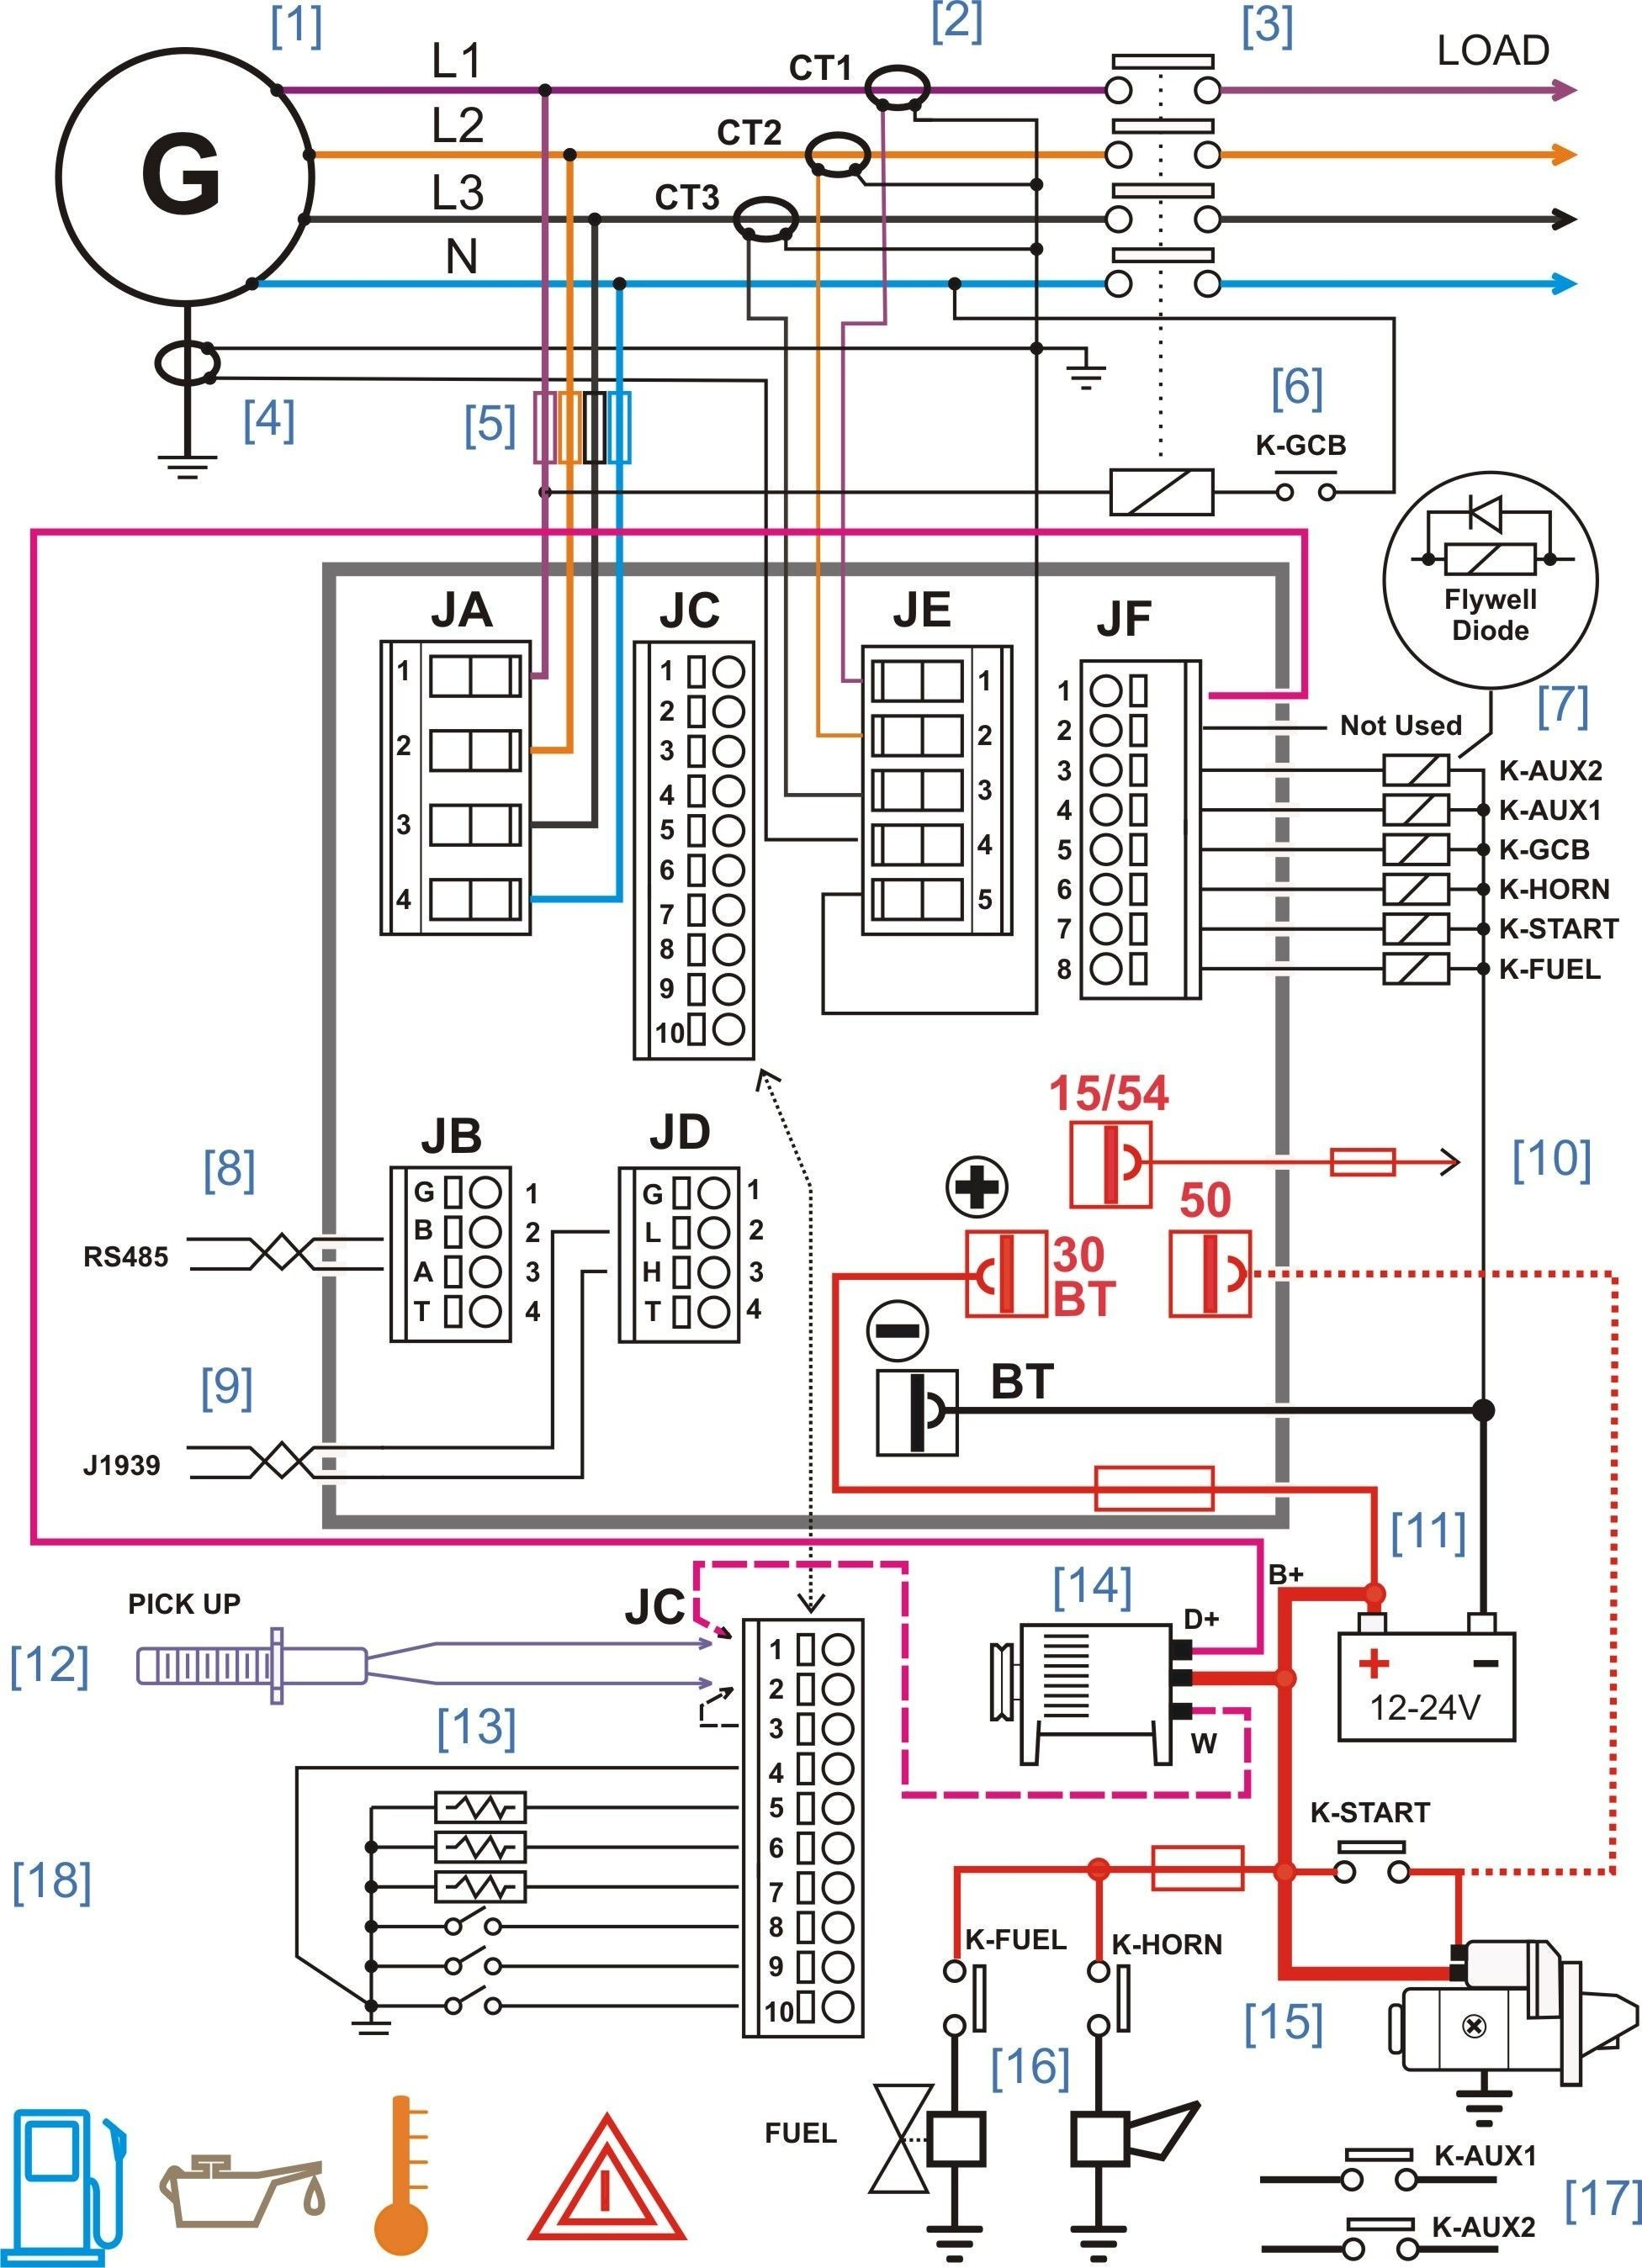 generac whole house generator wiring diagram frog heart ventral view transfer switch free power systems